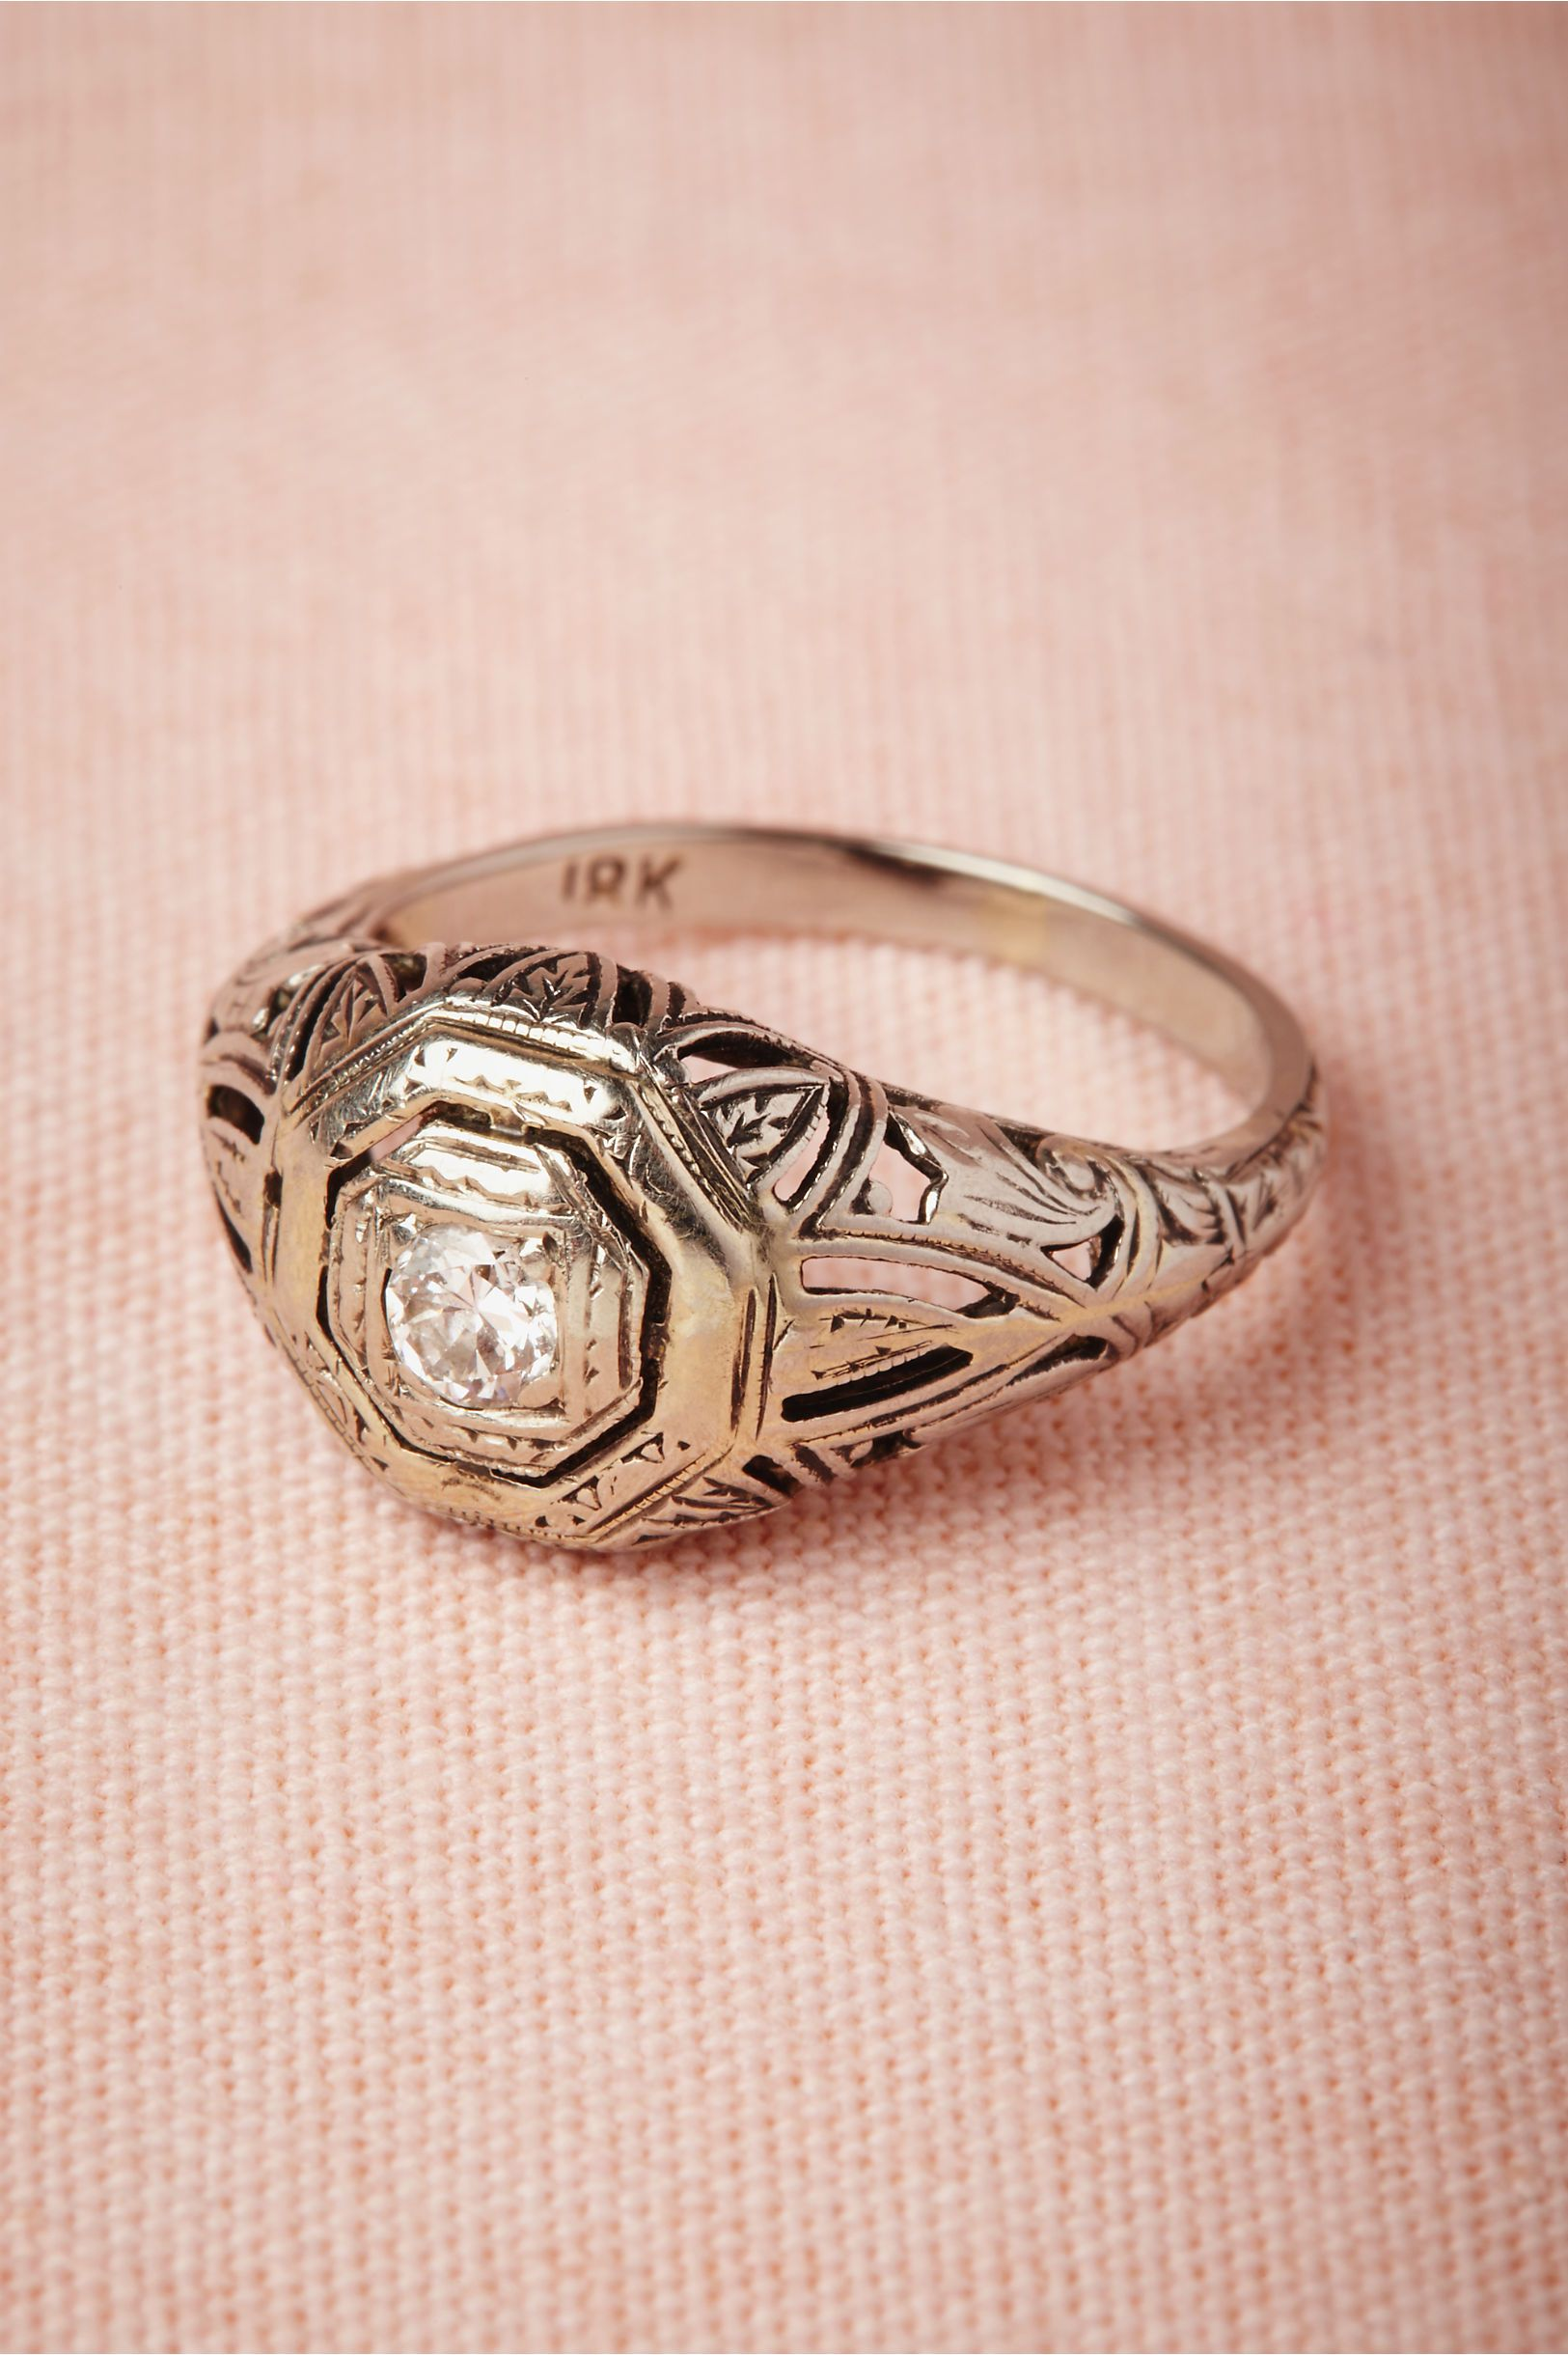 Coup De Foudre Ring $1,085.00 Style: 27649656 Intricate Art Deco ...